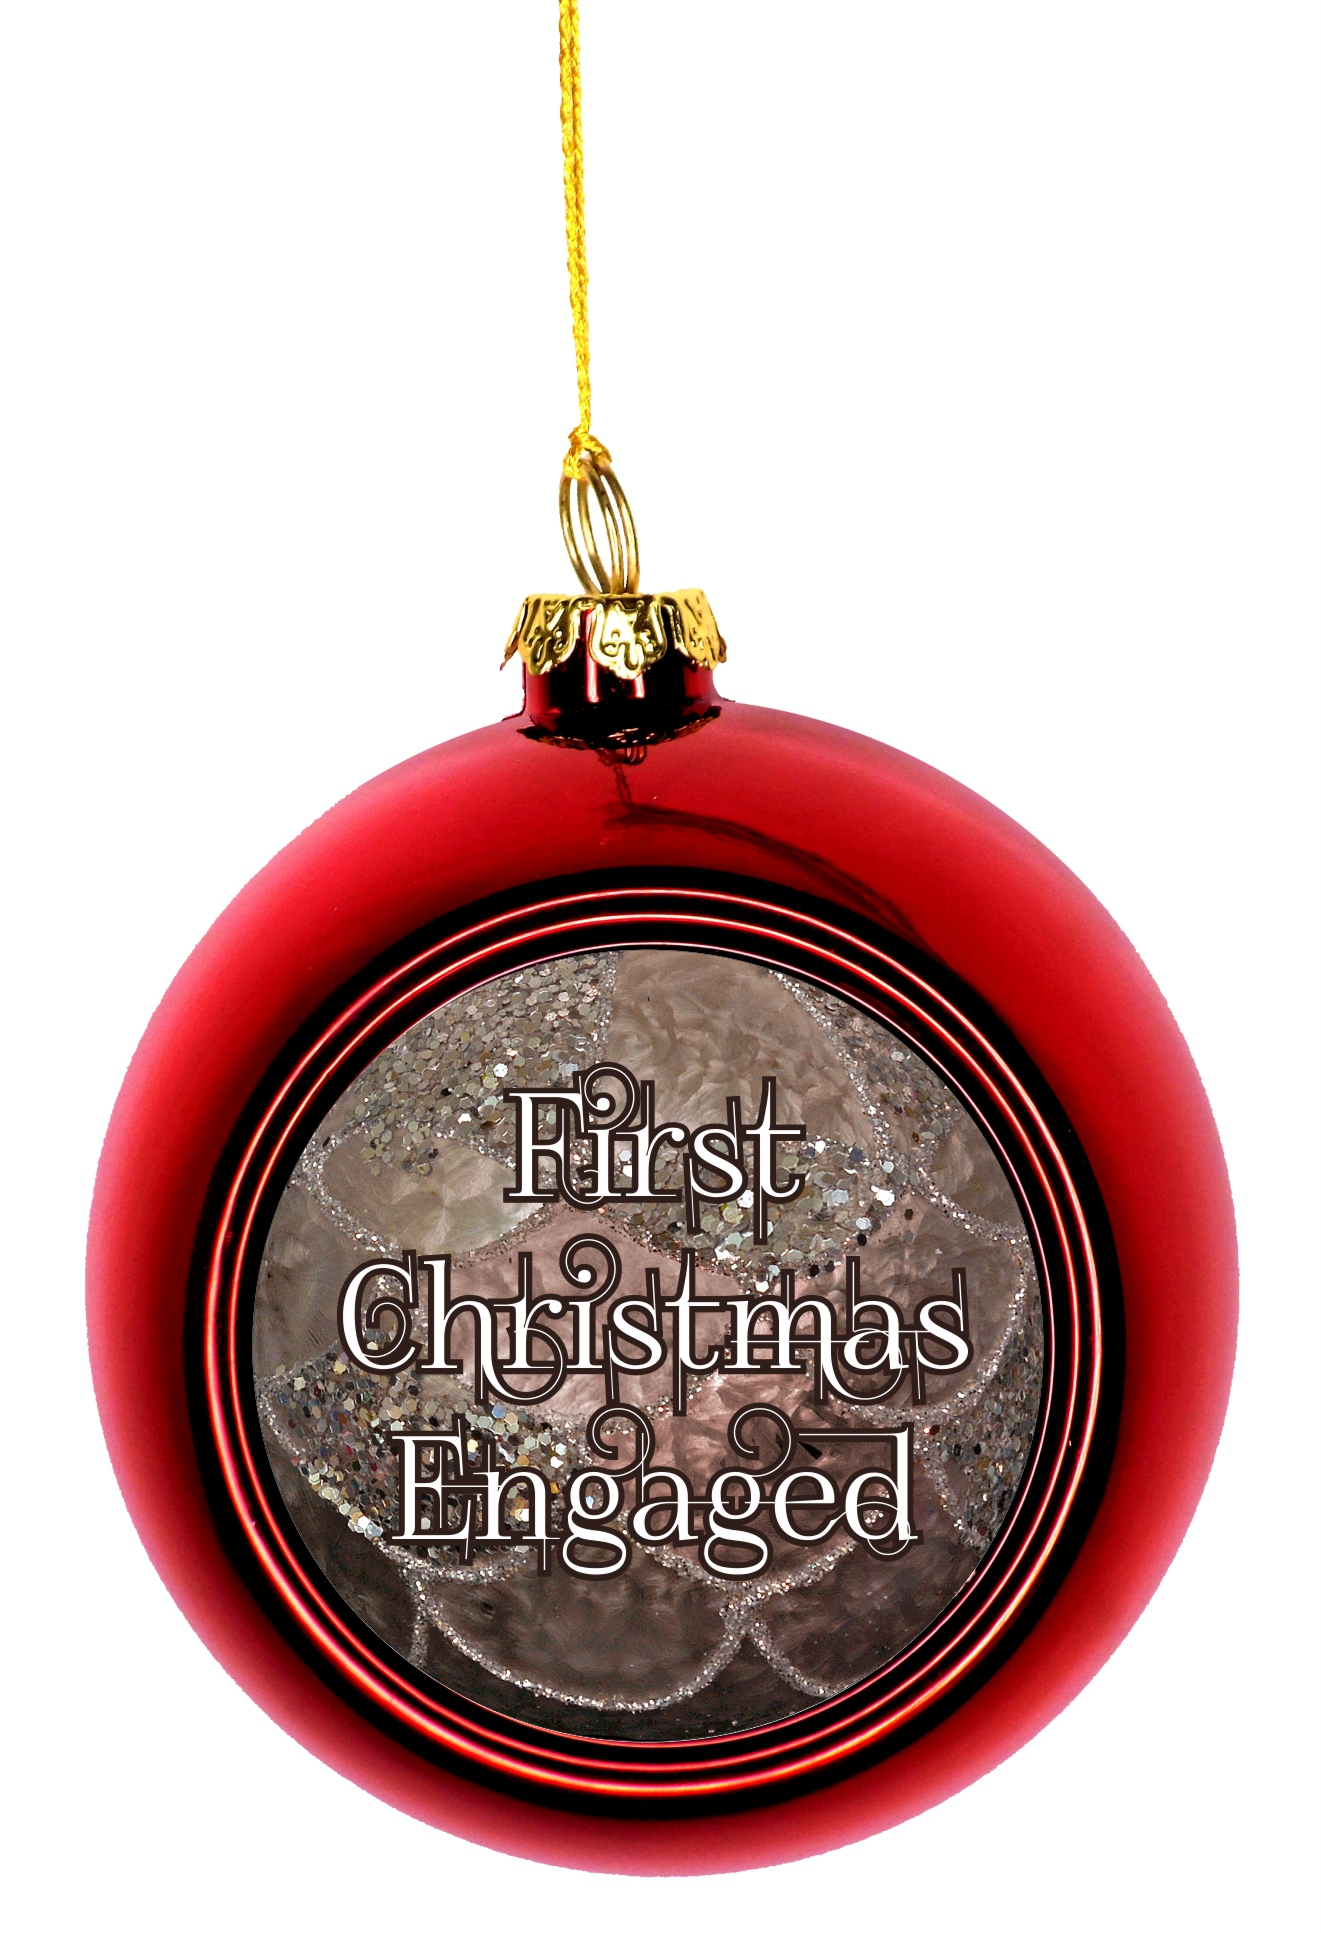 Ornaments Engagement 1st Christmas Engaged 1st Ornaments Red Bauble Christmas Ornament Balls